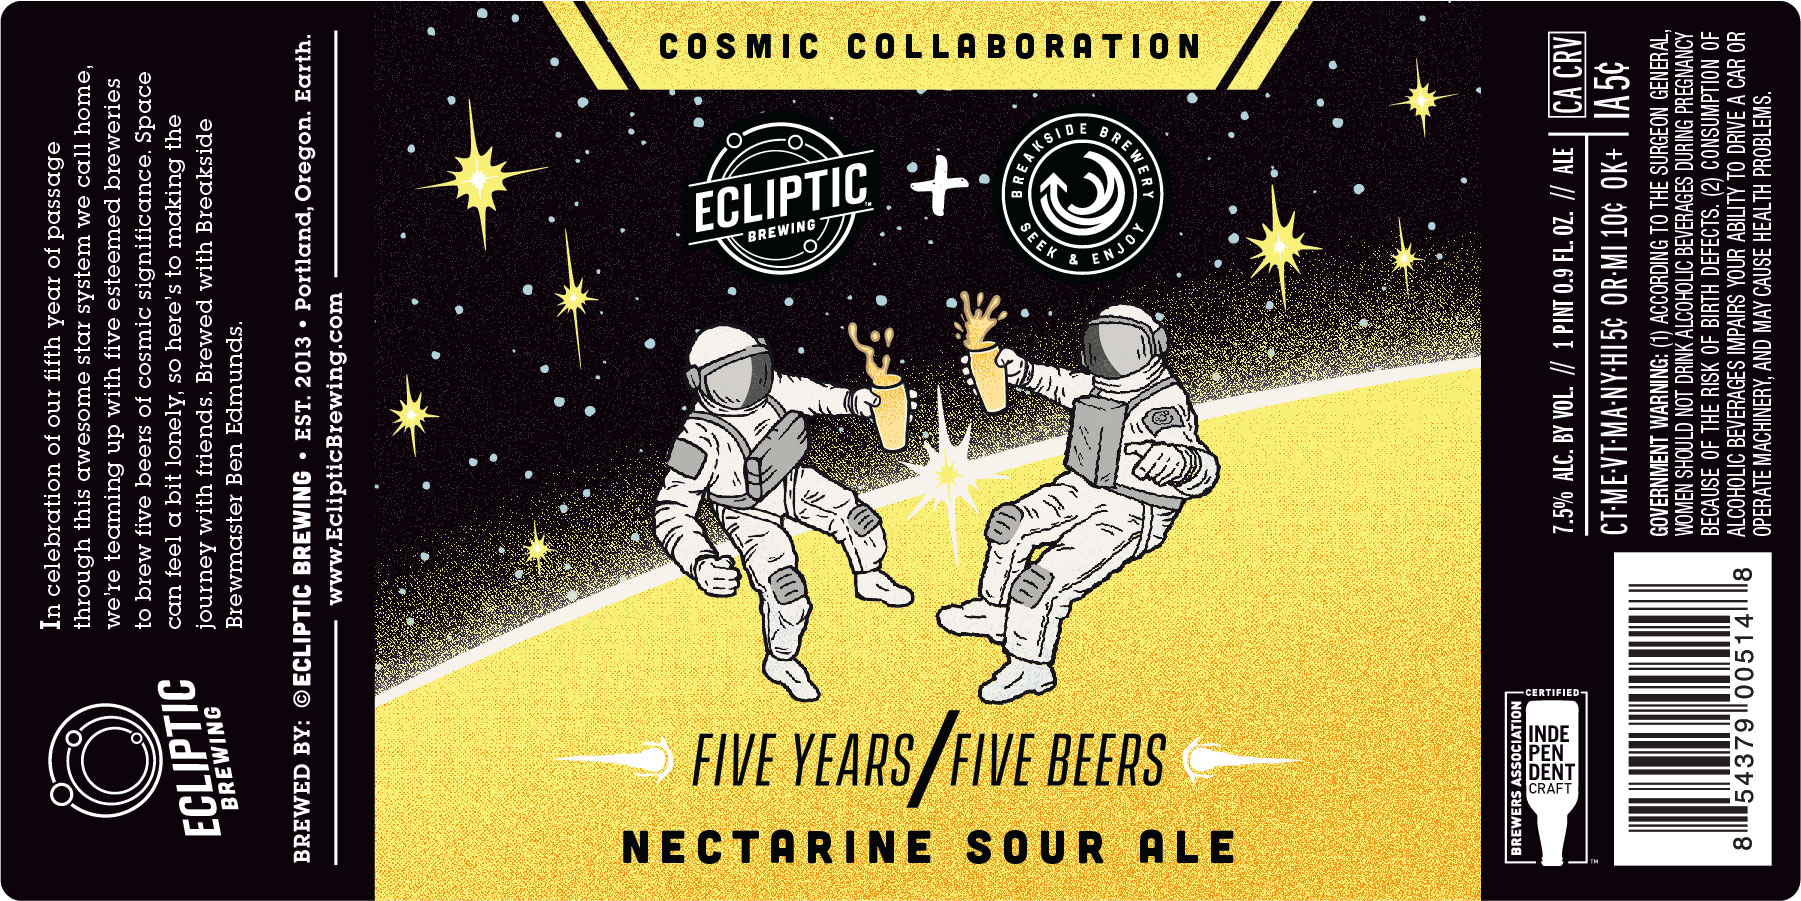 Ecliptic Brewing & Breakside Brewery Cosmic Collaboration Nectarine Sour Ale Label